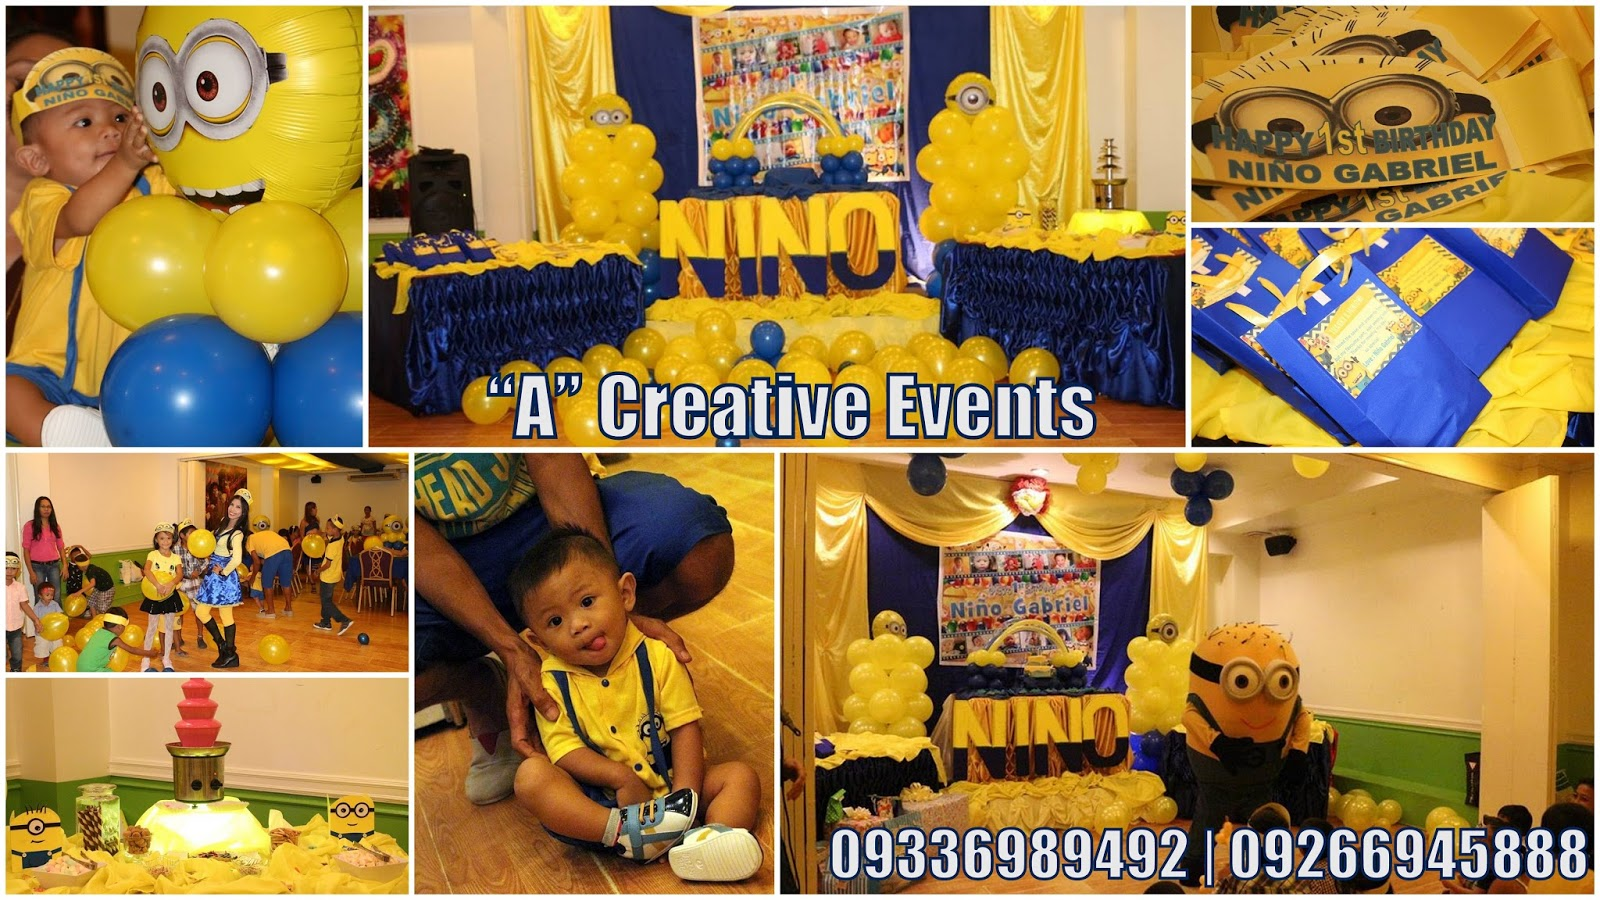 Nio Gabriels 1st Birthday Party Athena Miels Balloons Bubbles